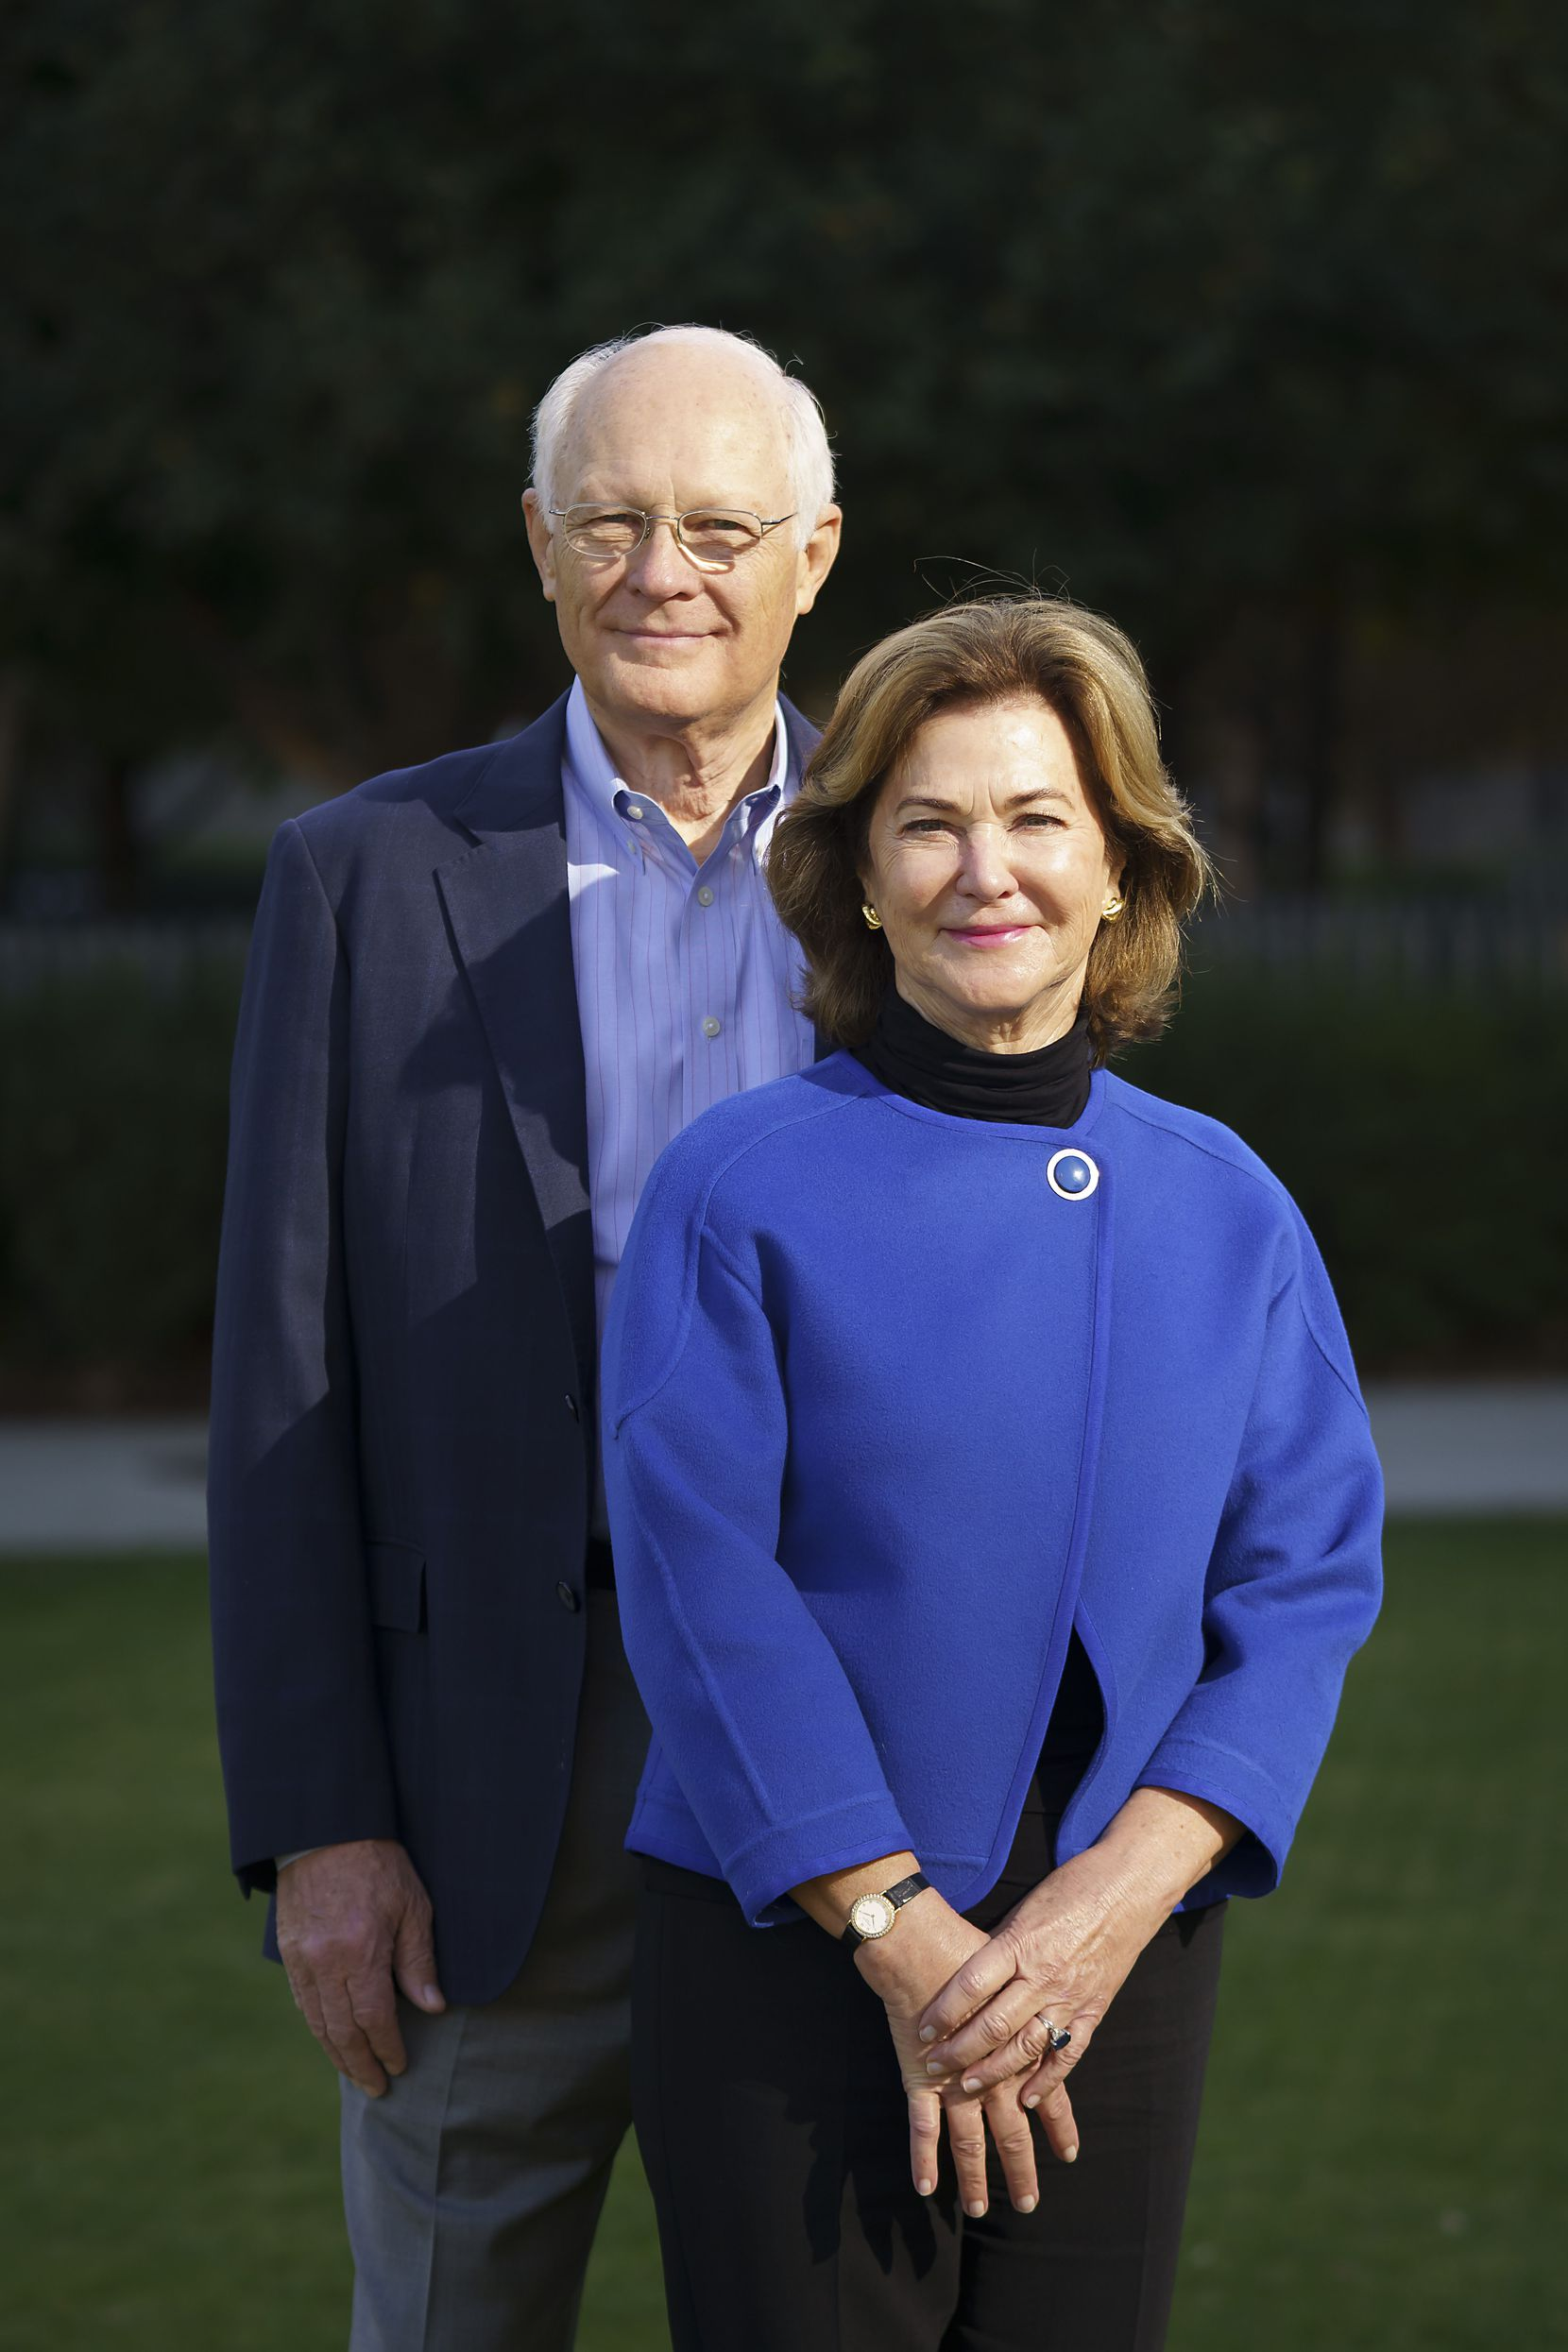 Klyde Warren Park board member Nancy Best and her husband Randy were photographed at the park on Nov. 18.